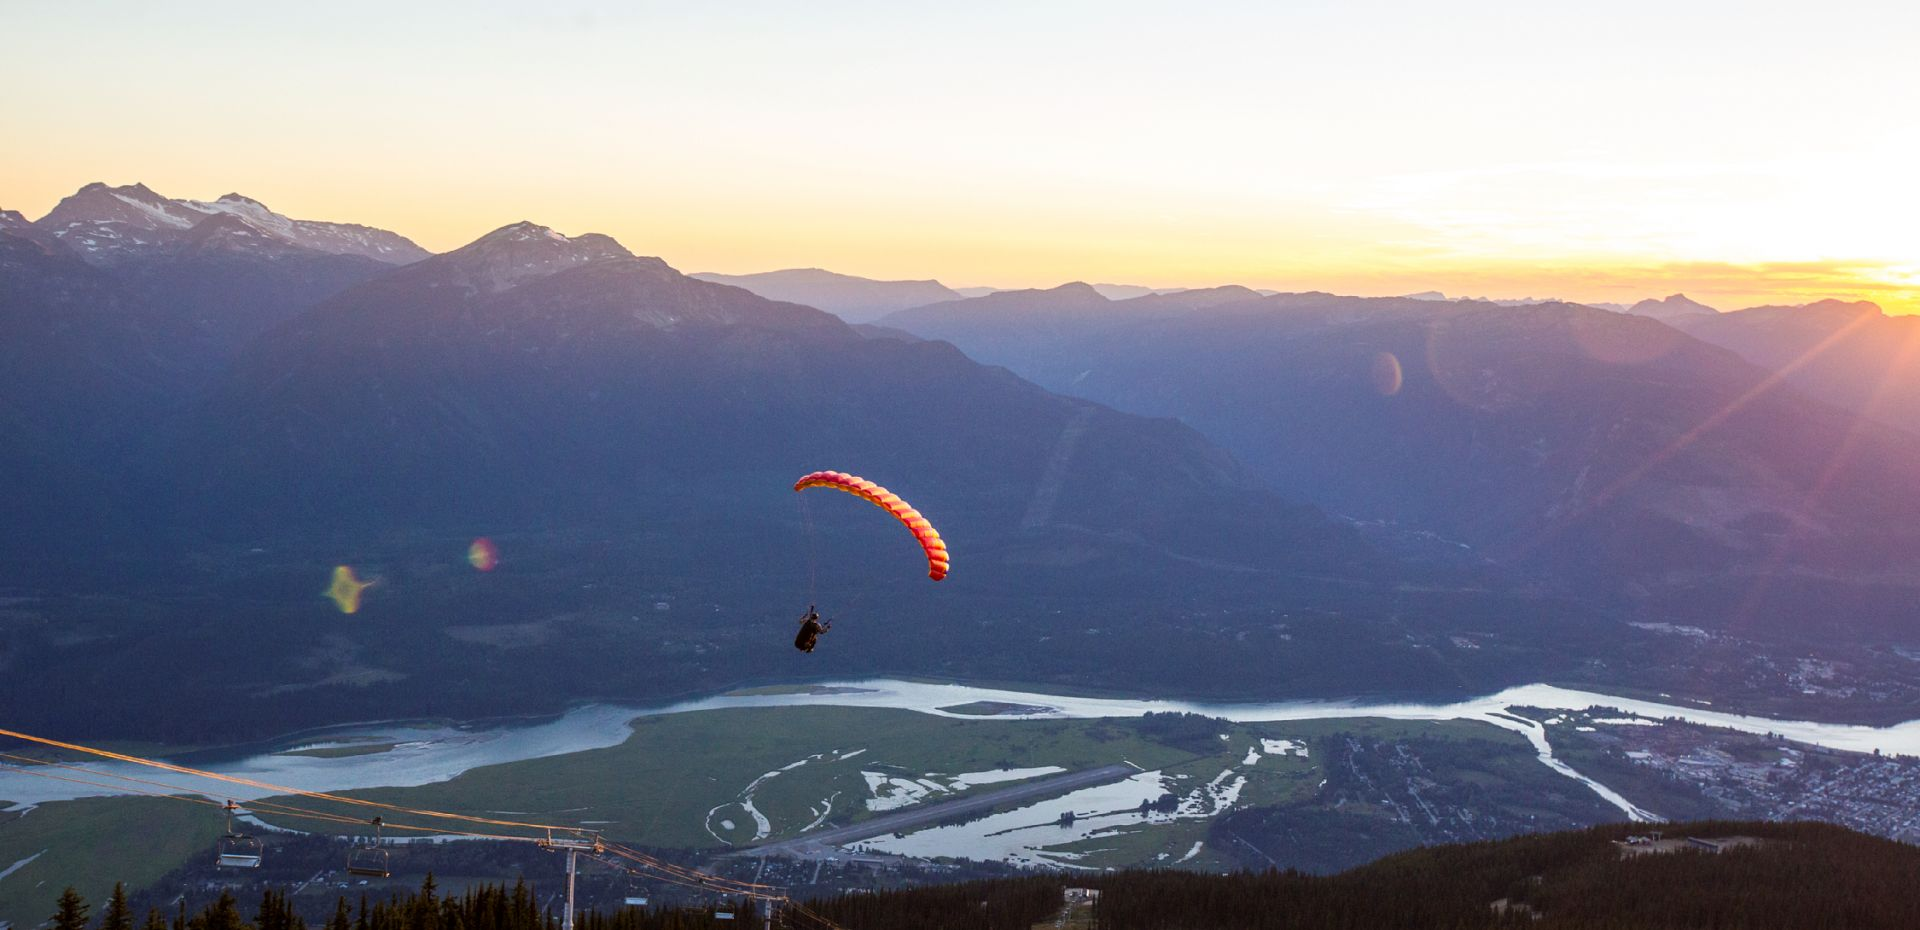 A man hang gliding in Revelstoke, BC